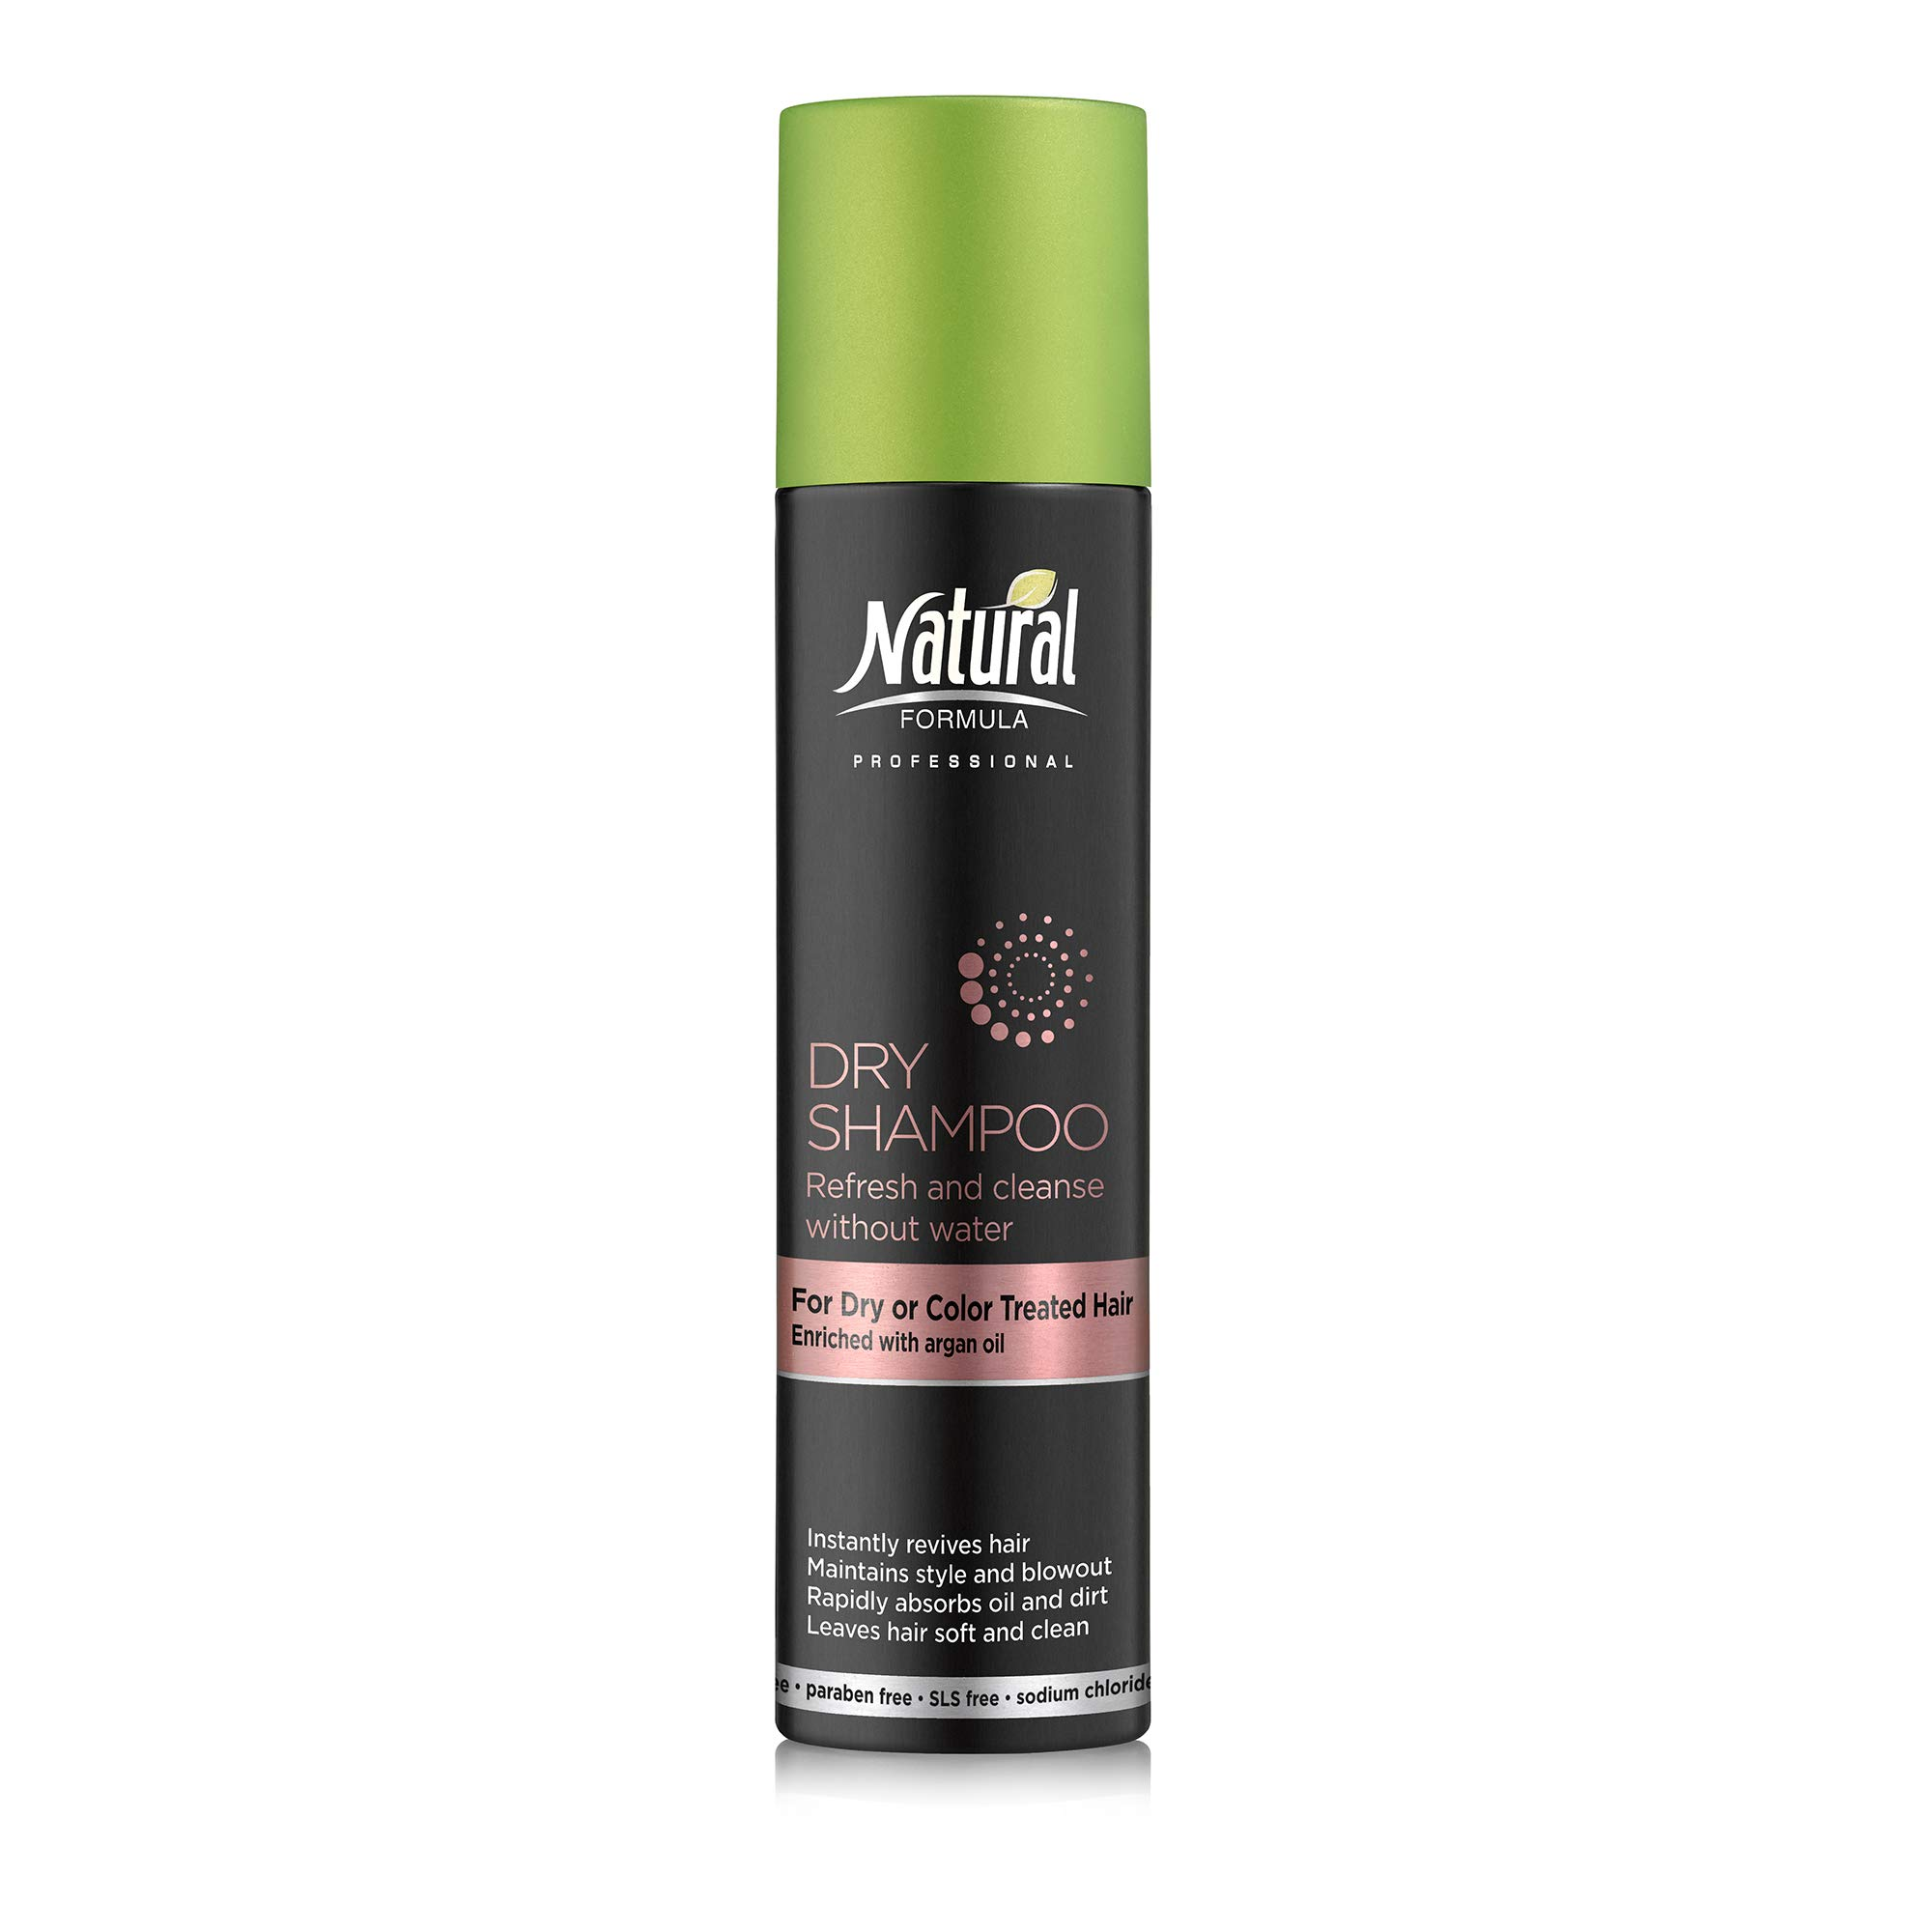 Natural Formula Dry Shampoo For Dry, Damaged or Color Treated Hair - Argan Oil Infused Dry Shampoo Hair Spray – Leaves No White Residue - Sodium Chloride Salt, Talc, SLS And Paraben Free 6.76 Fl Oz